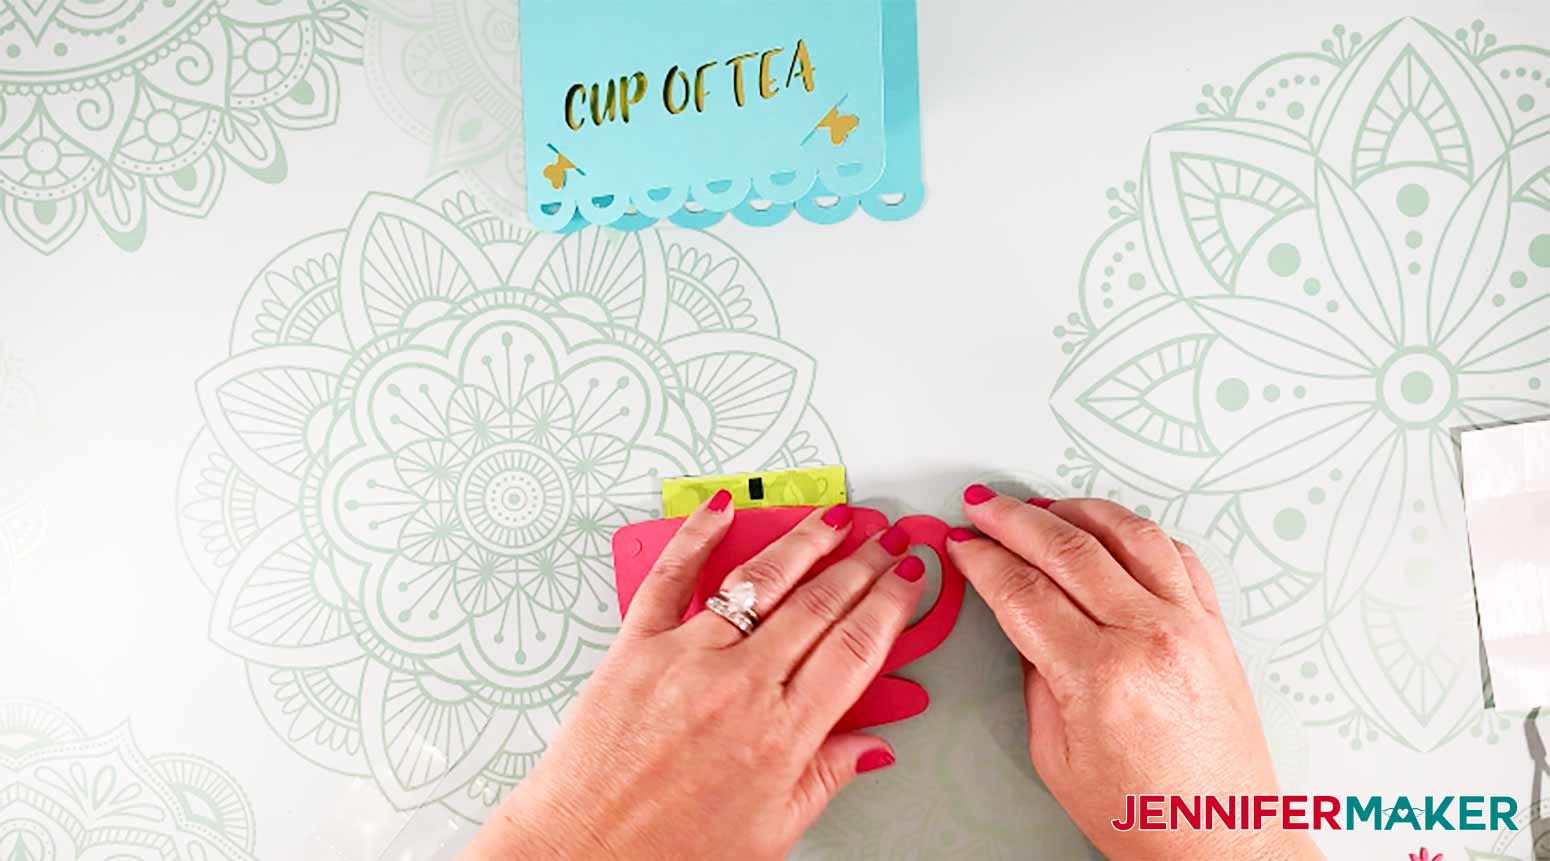 You-Are-My-Cup-Of-Tea-Card-JenniferMaker-Putting-Glue-Dot-On-Cup